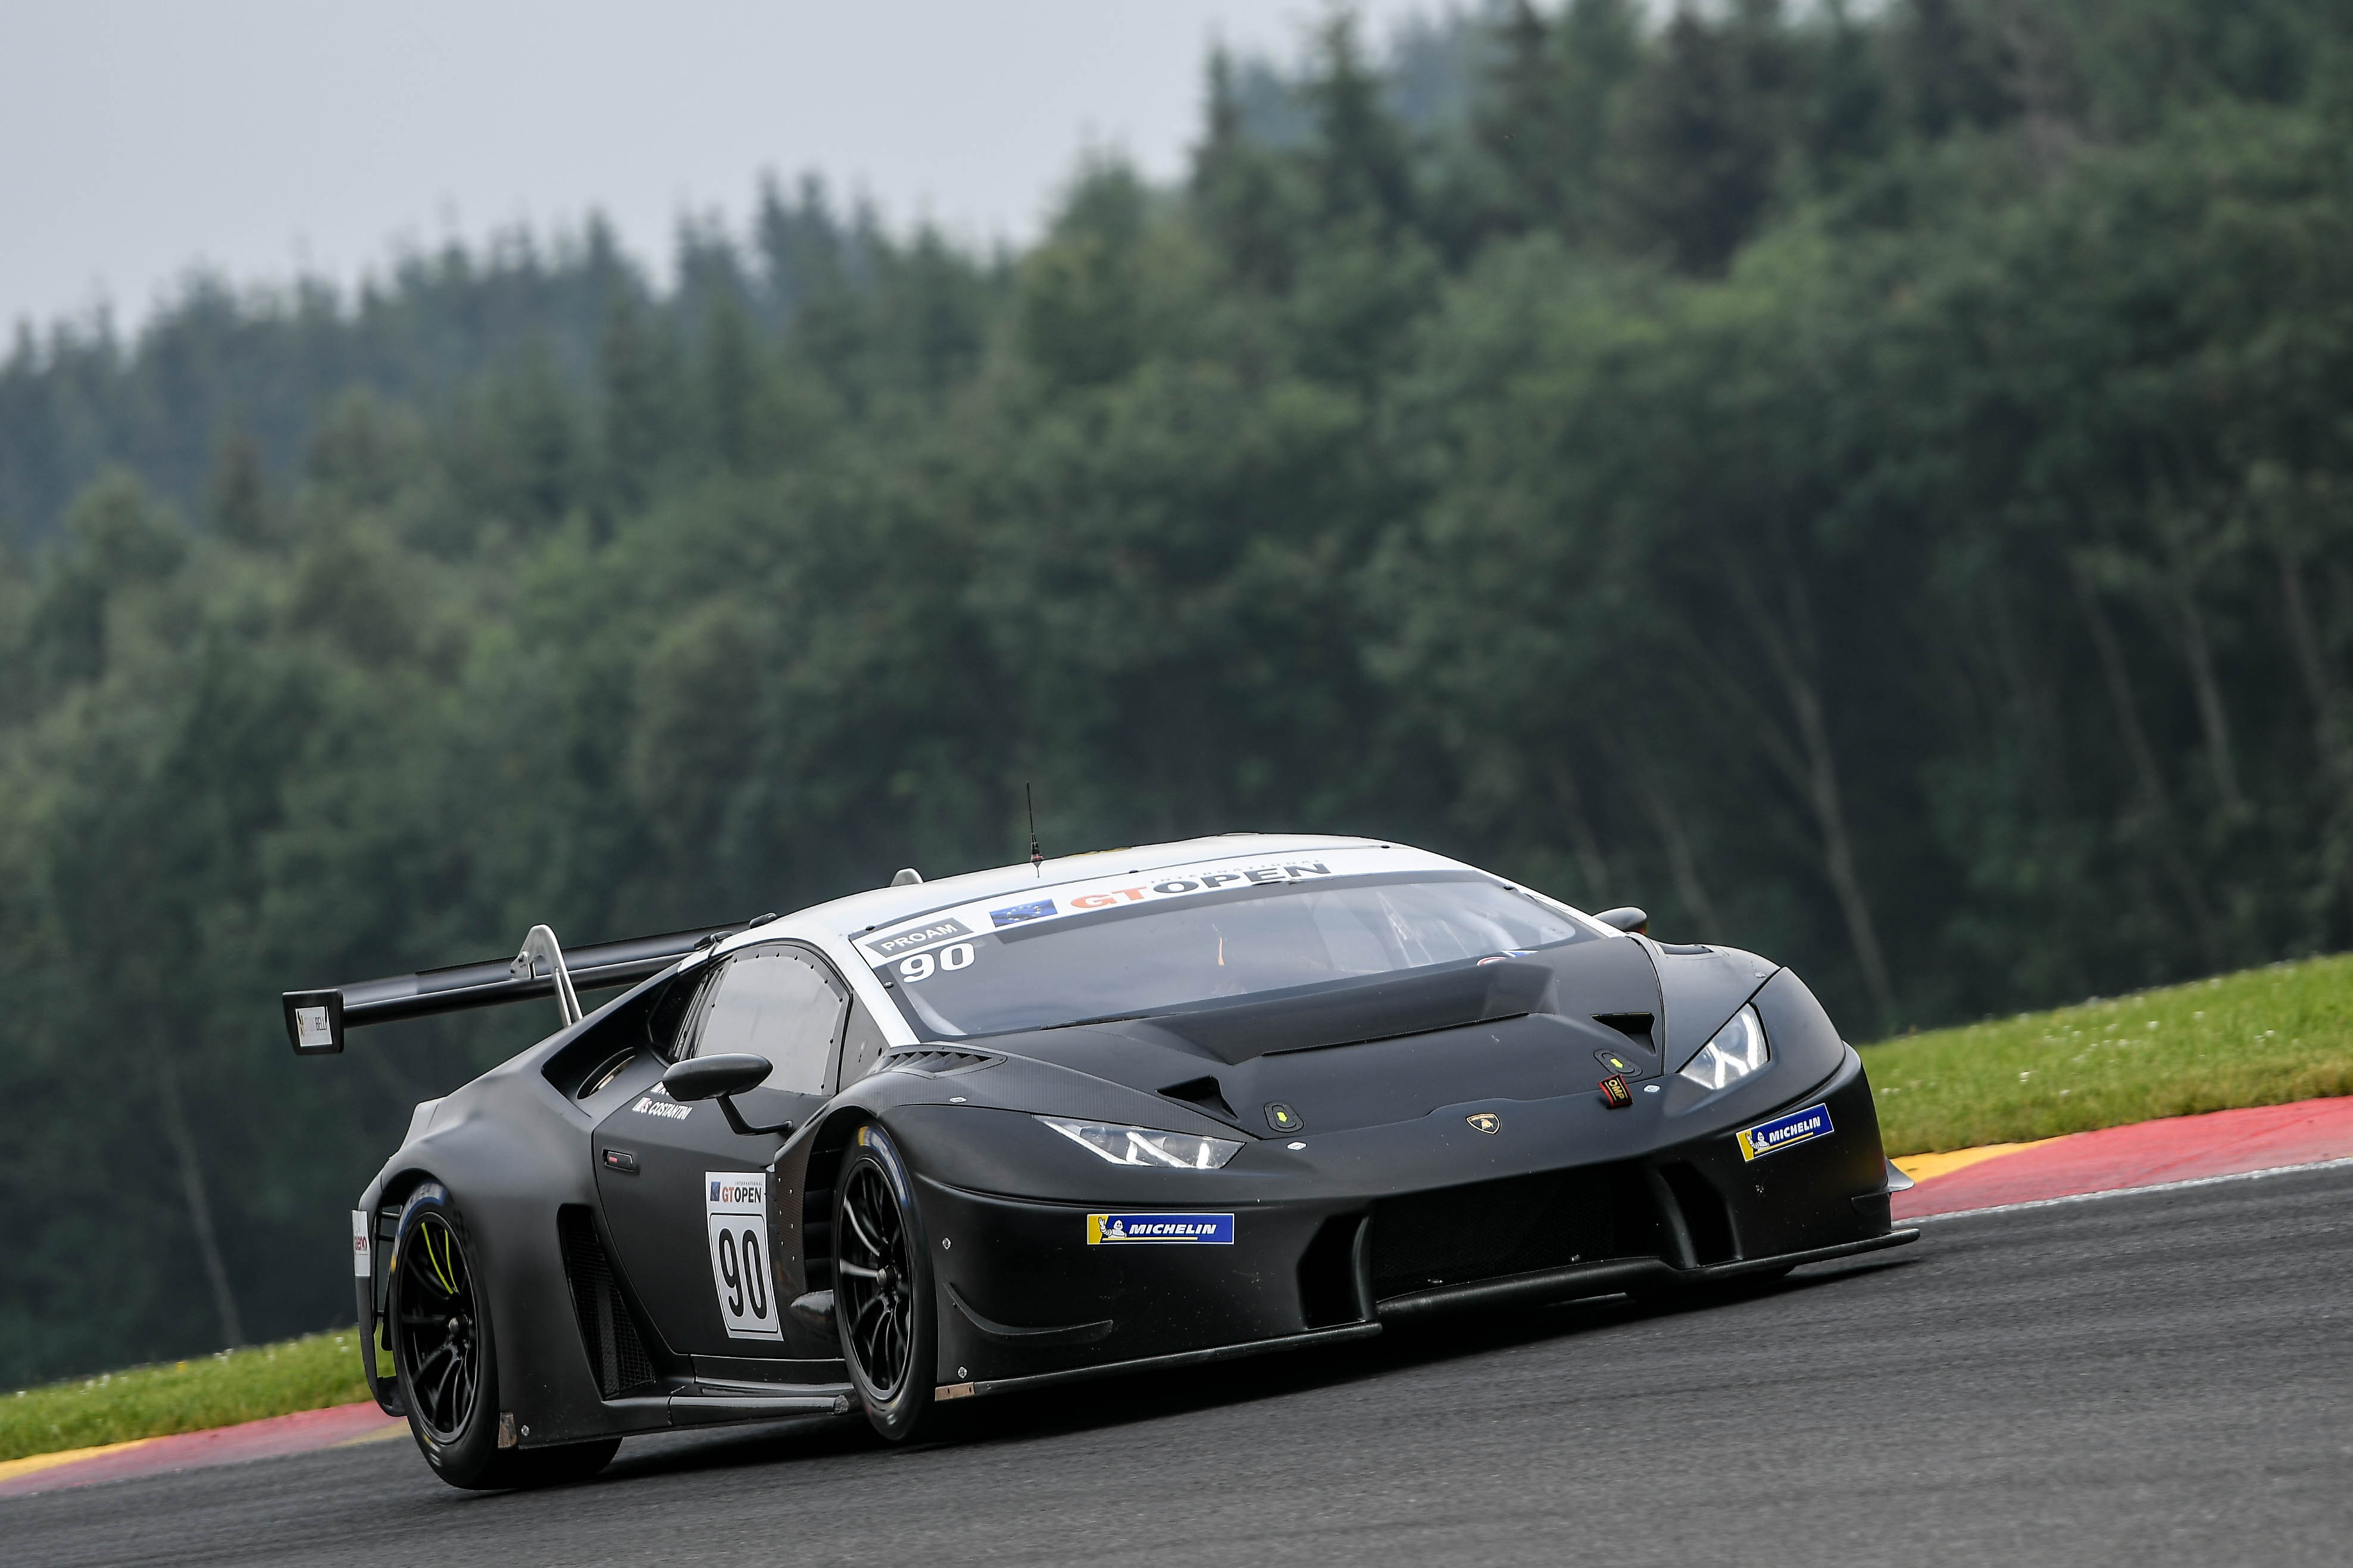 Target unlucky  in the International GT Open round at Spa